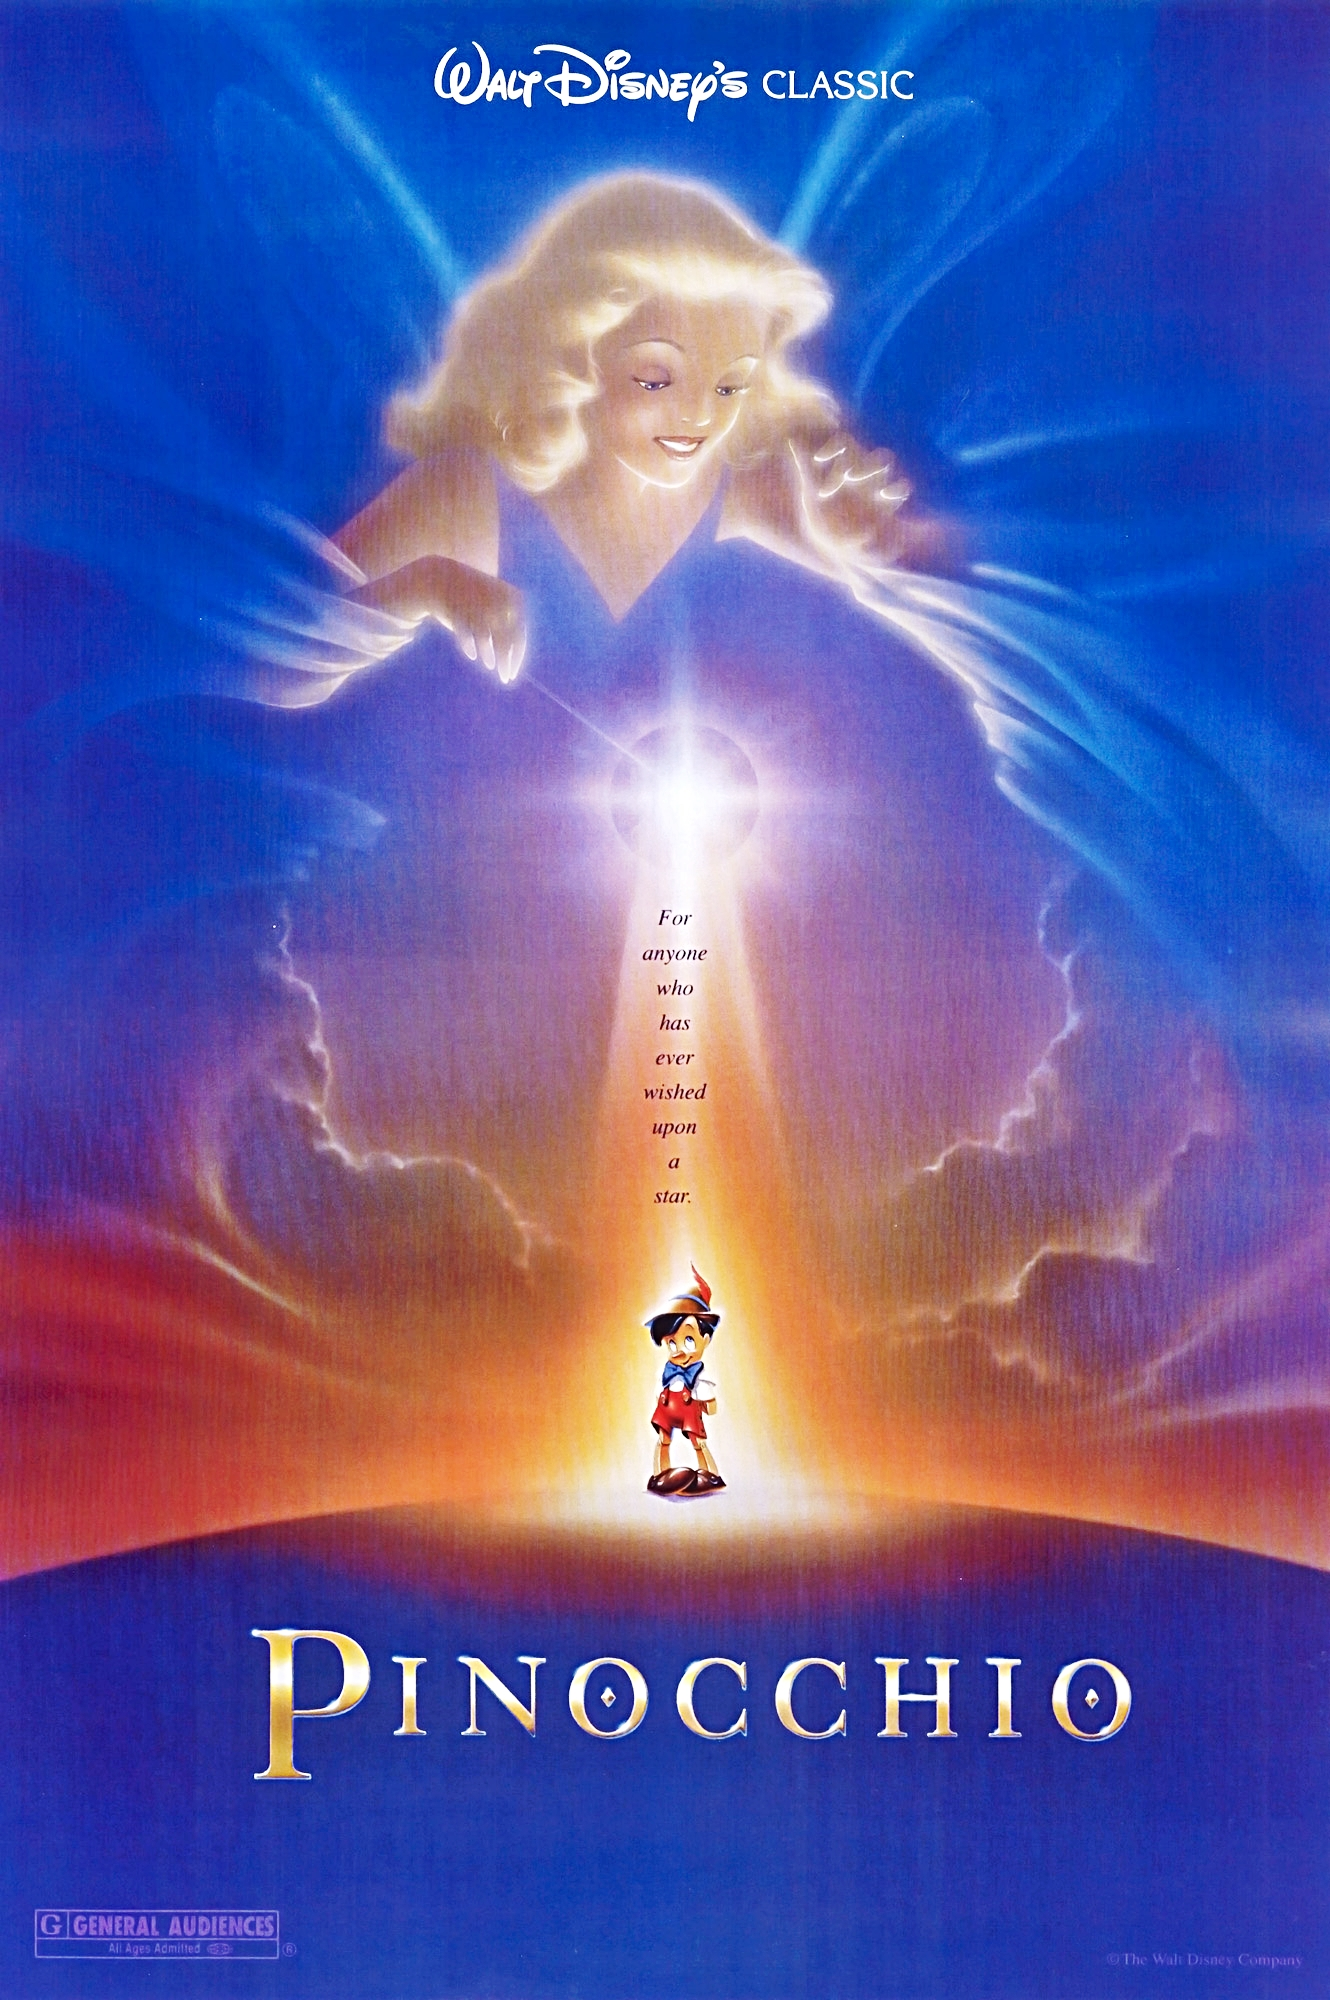 Disney Pinocchio Movie Poster 27x41 Folded 1962 Re Issue R62 1 ...